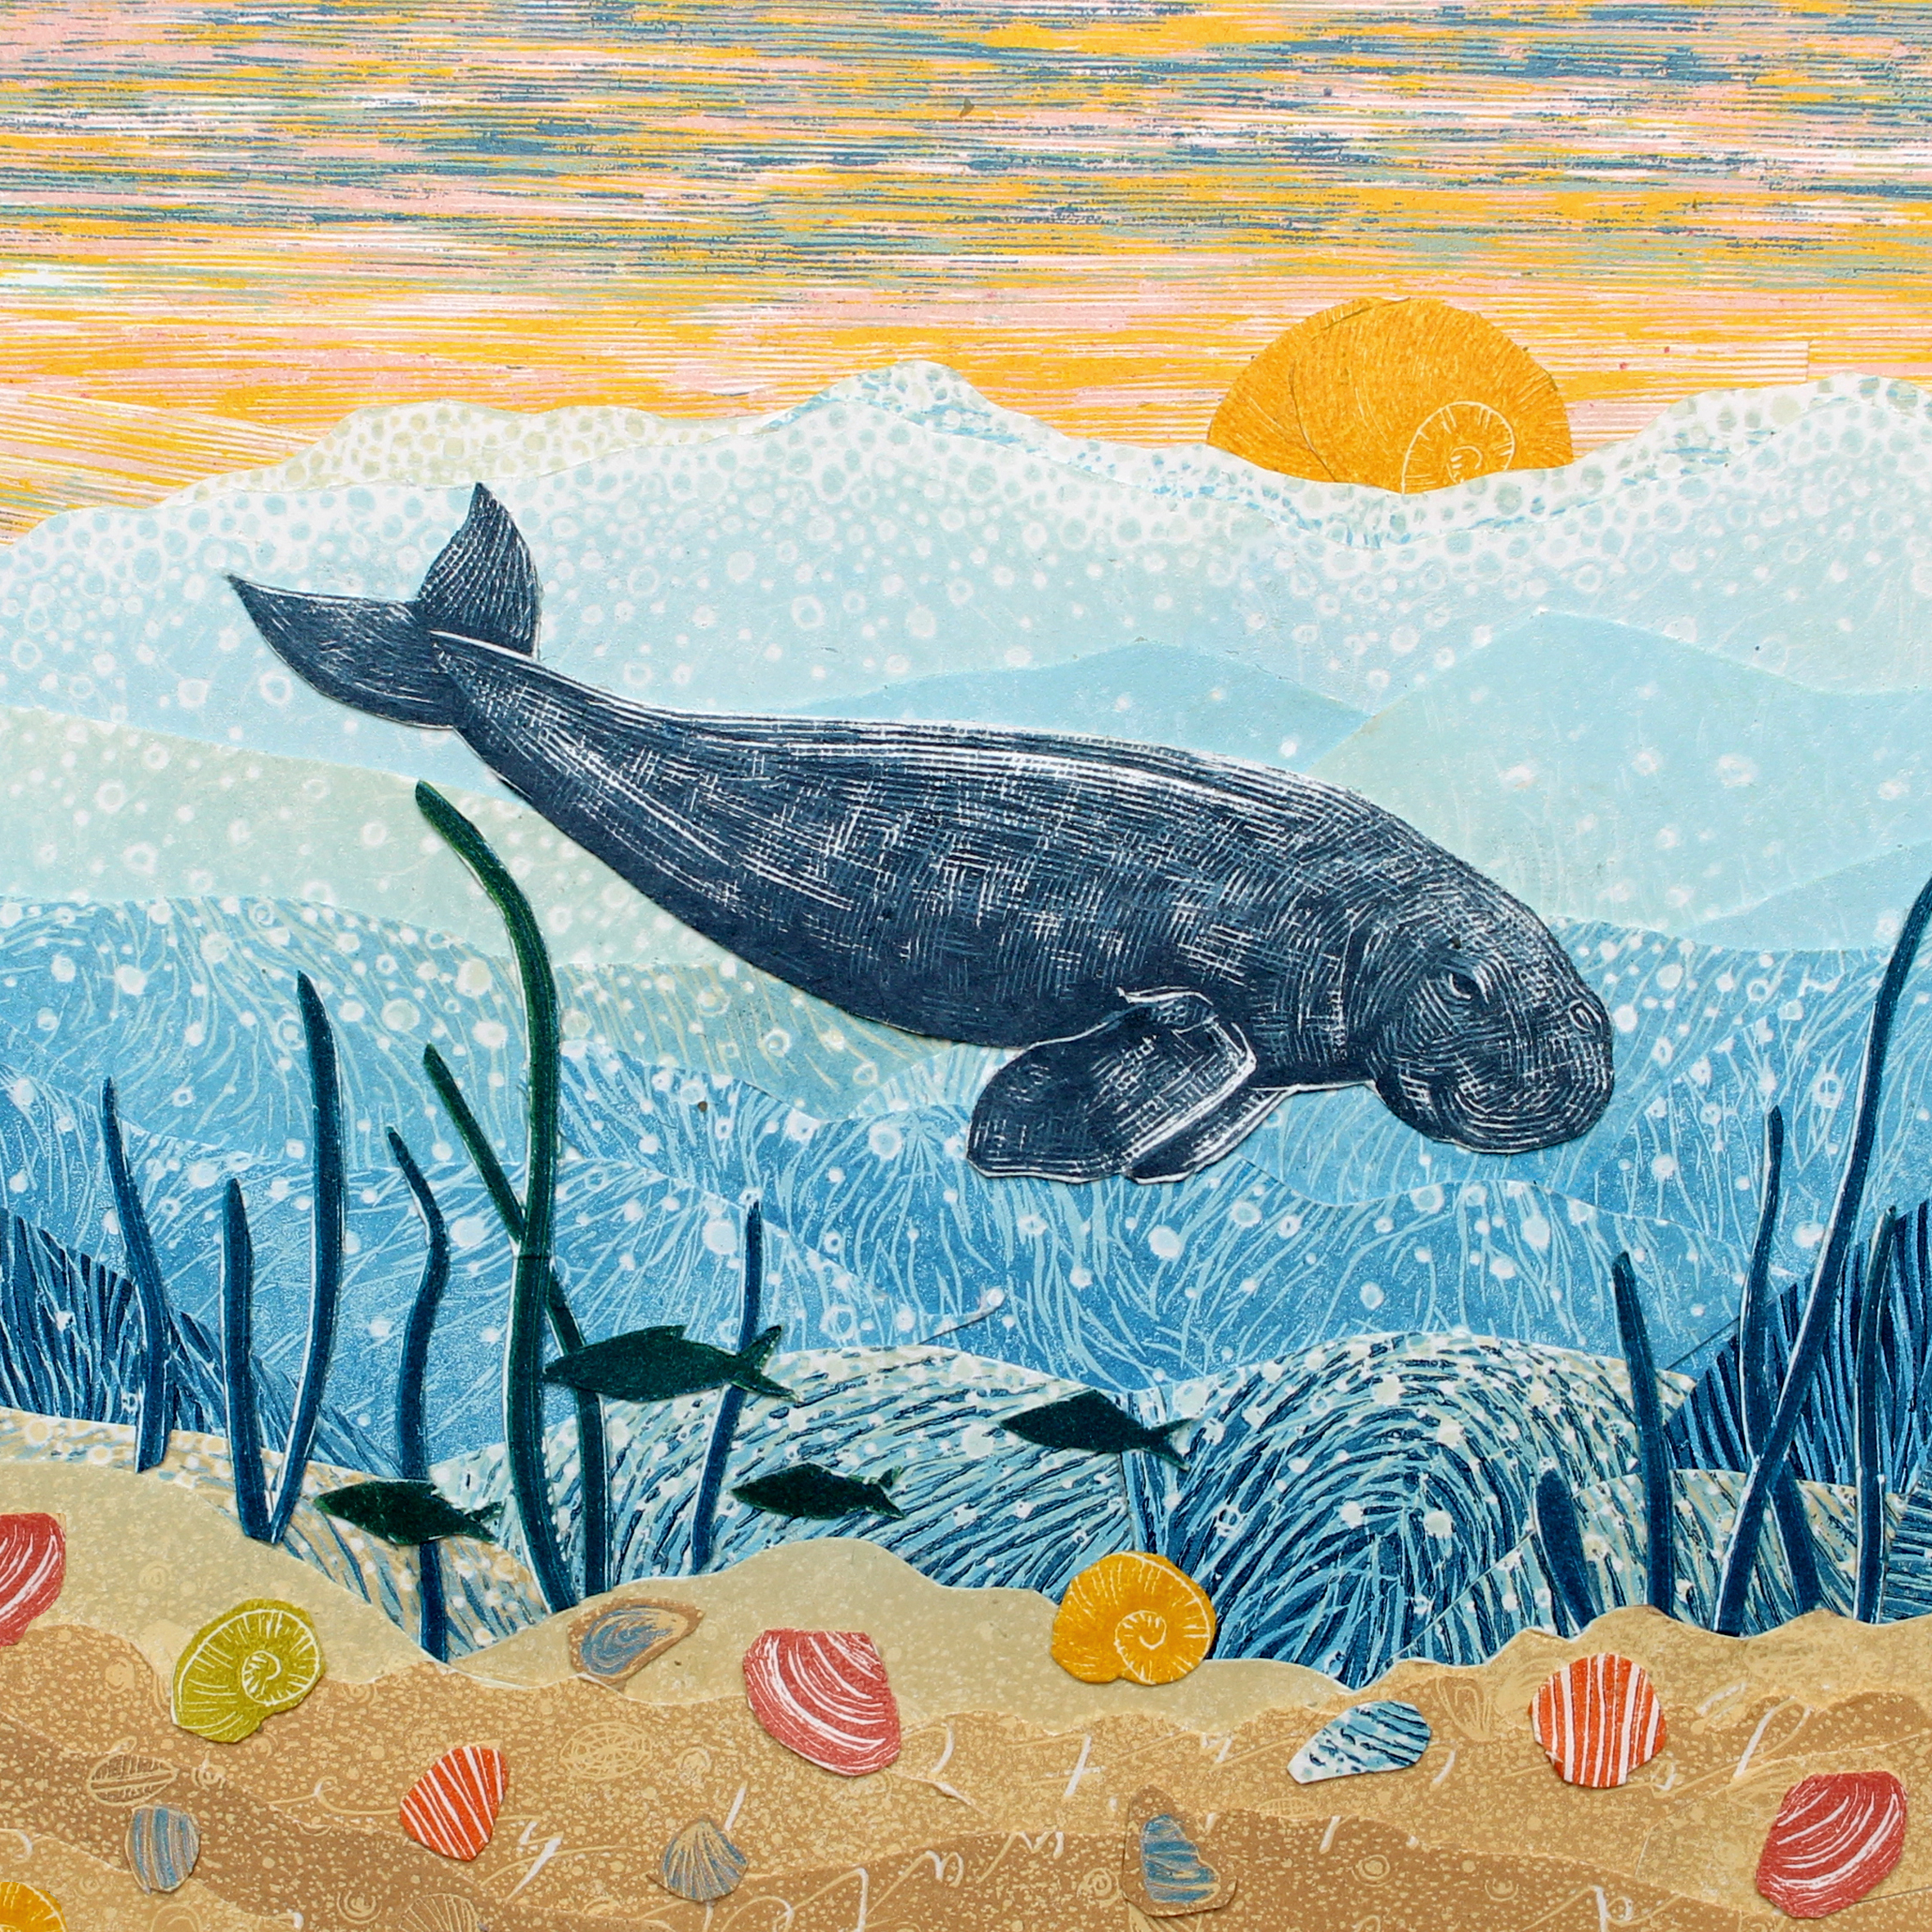 Textured drawing with many colours, including the sky in blue and yellow at the top with a big yellow sun, the waves of the sea in increasingly dark blue, then the sand with colourful shells patterned on it. The dark blue dugong floats over dark blue kelp fronds and the shadows of a few fish.